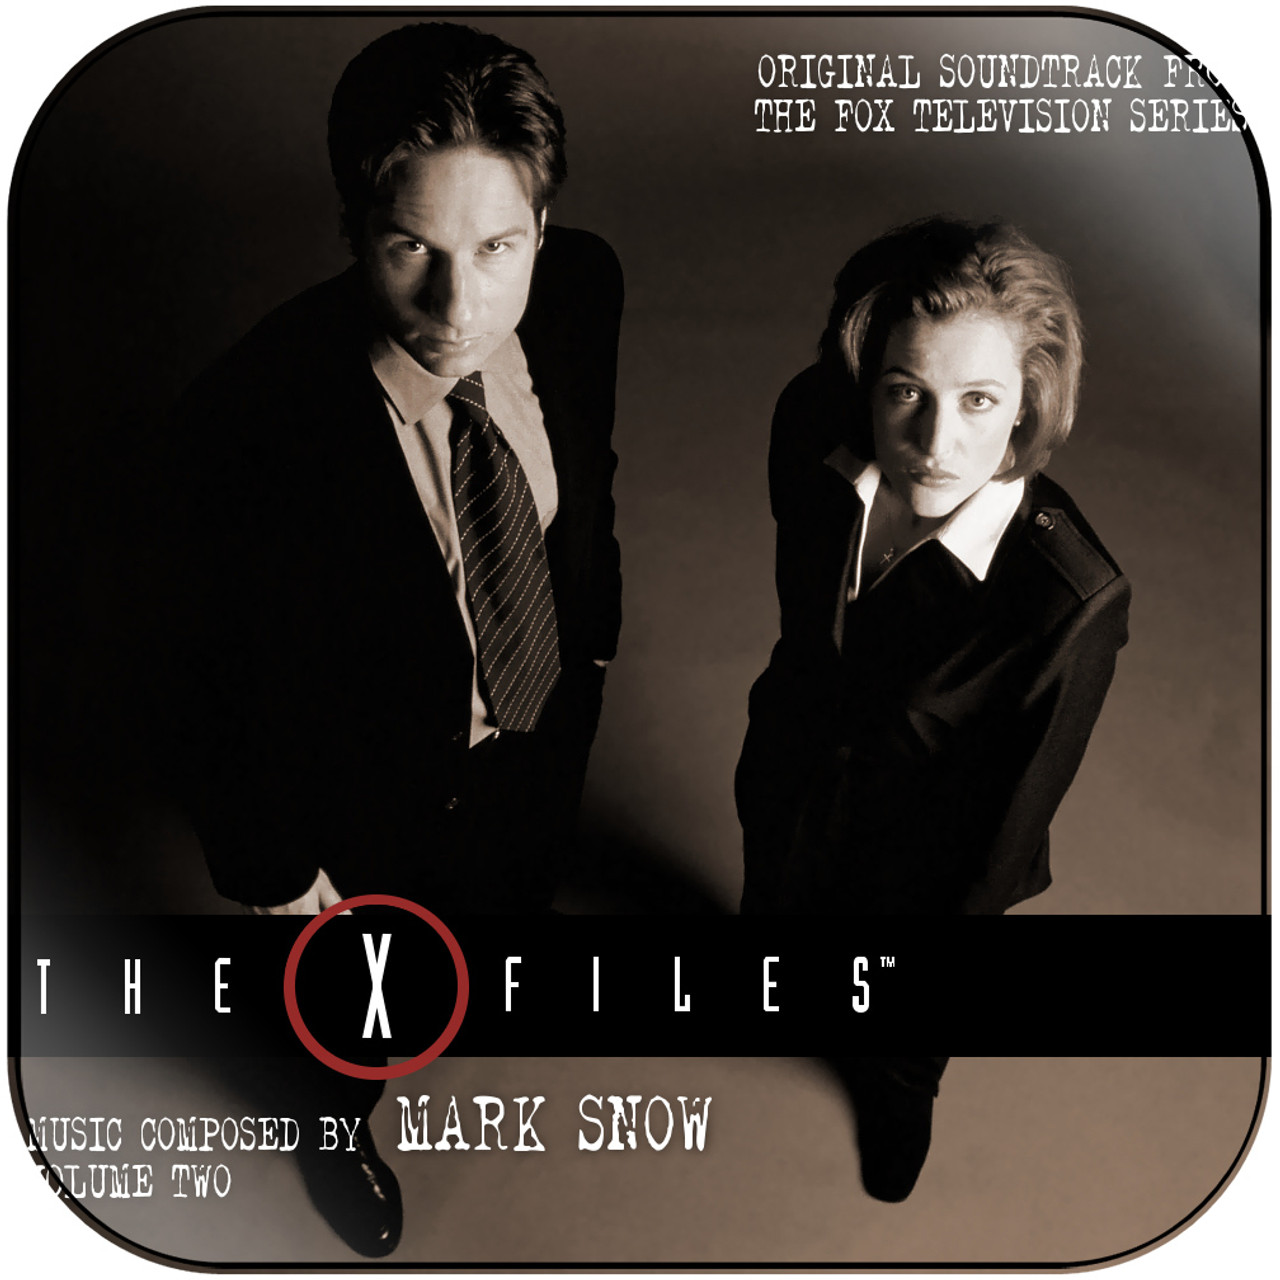 x-files soundtrack